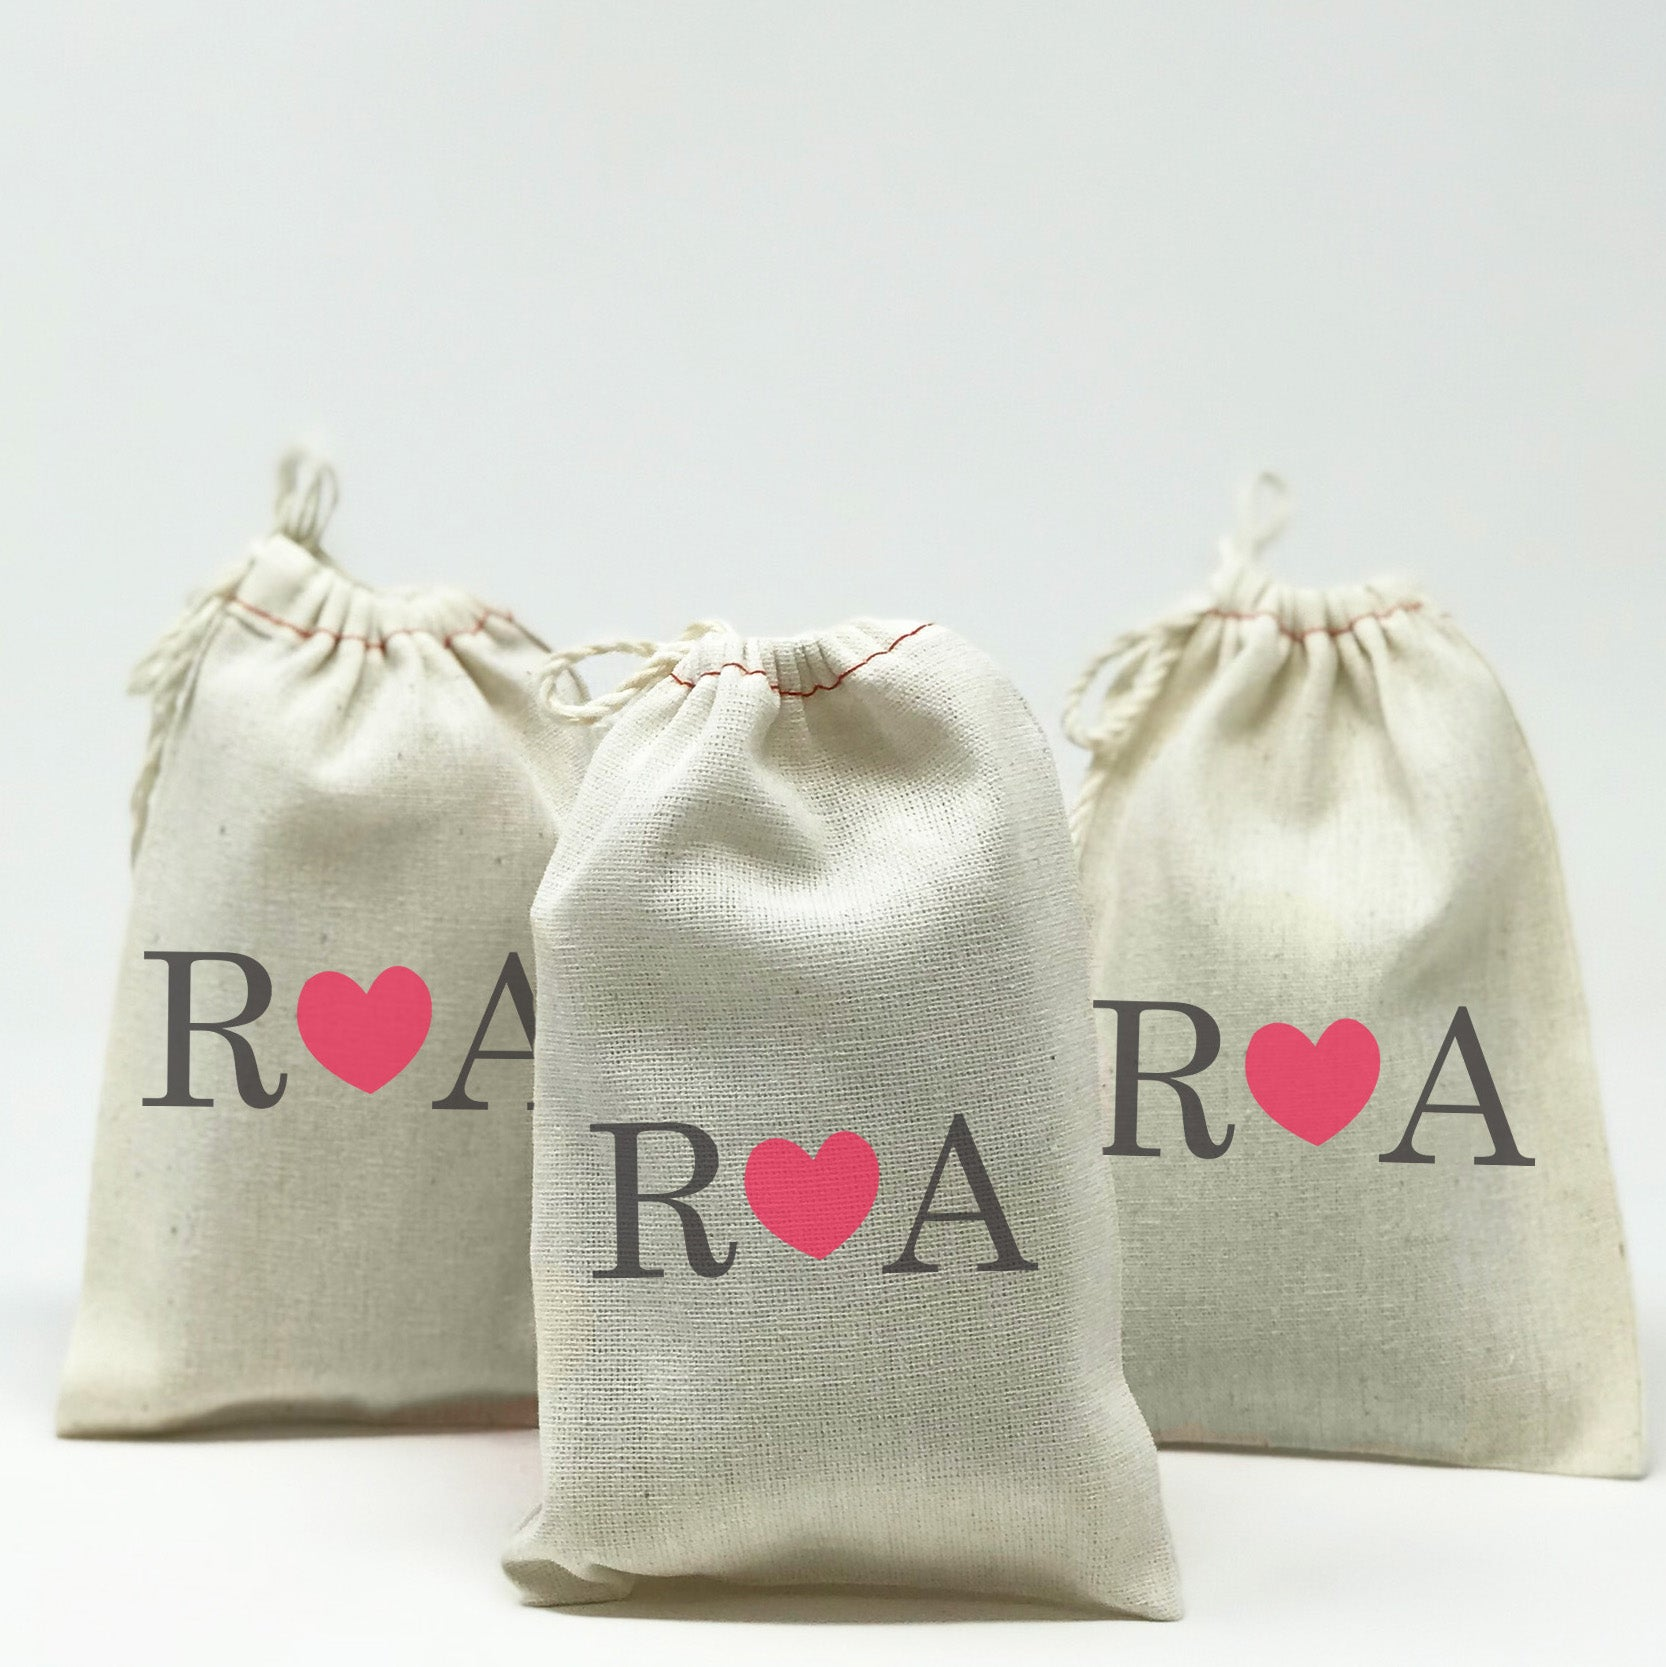 Personalized Favor Bags With Initials – Stamp Out